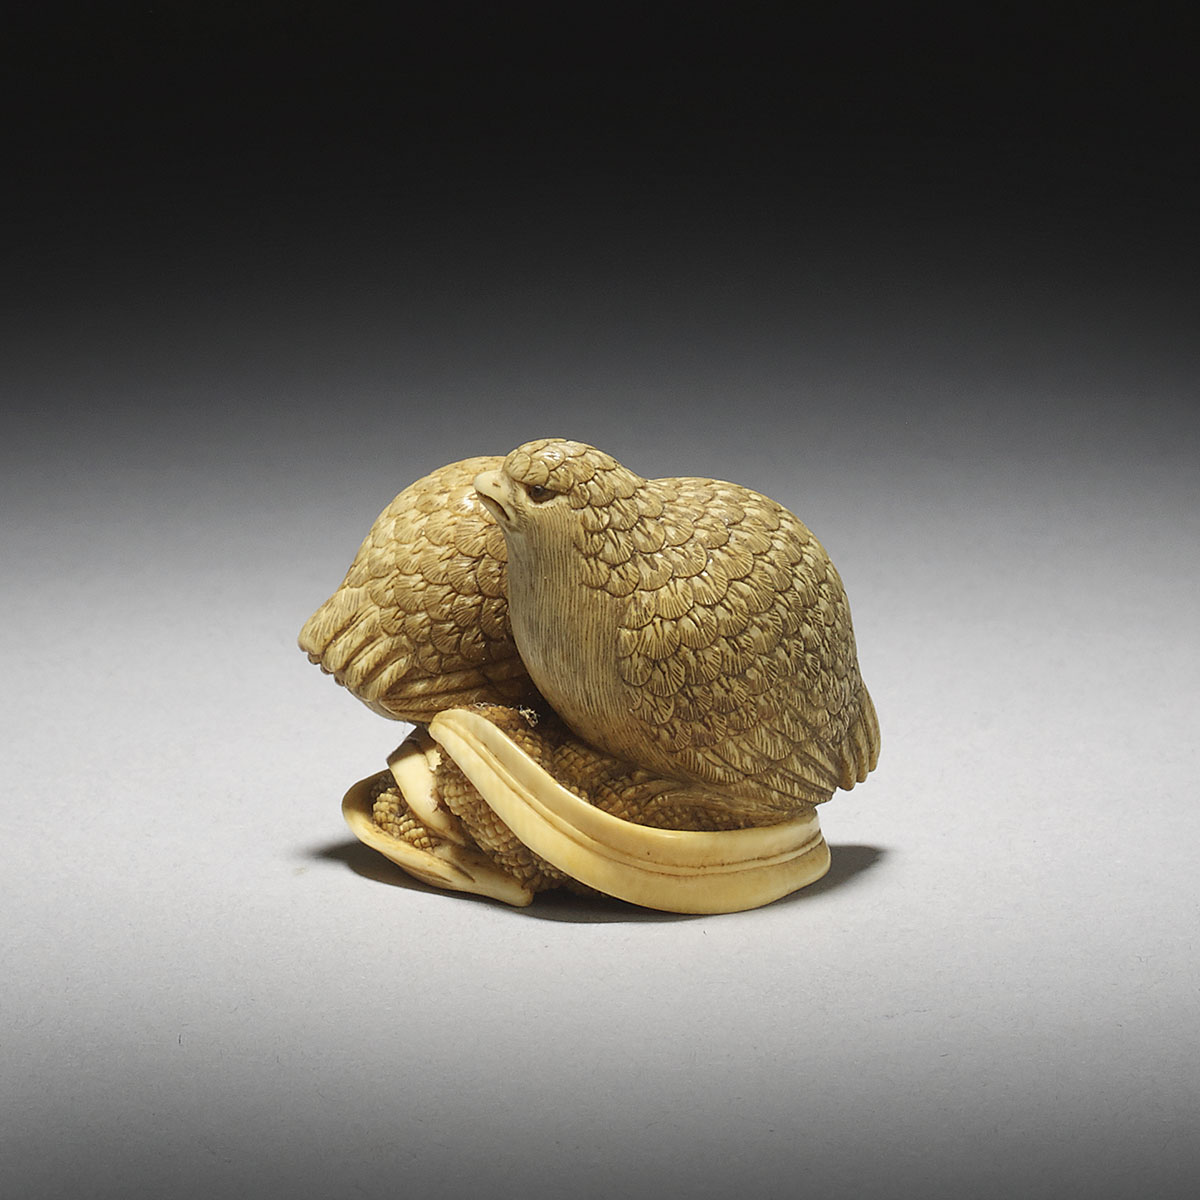 Ivory Netsuke of a Pair of Quails on Millet by Okatori_MR2916_v1